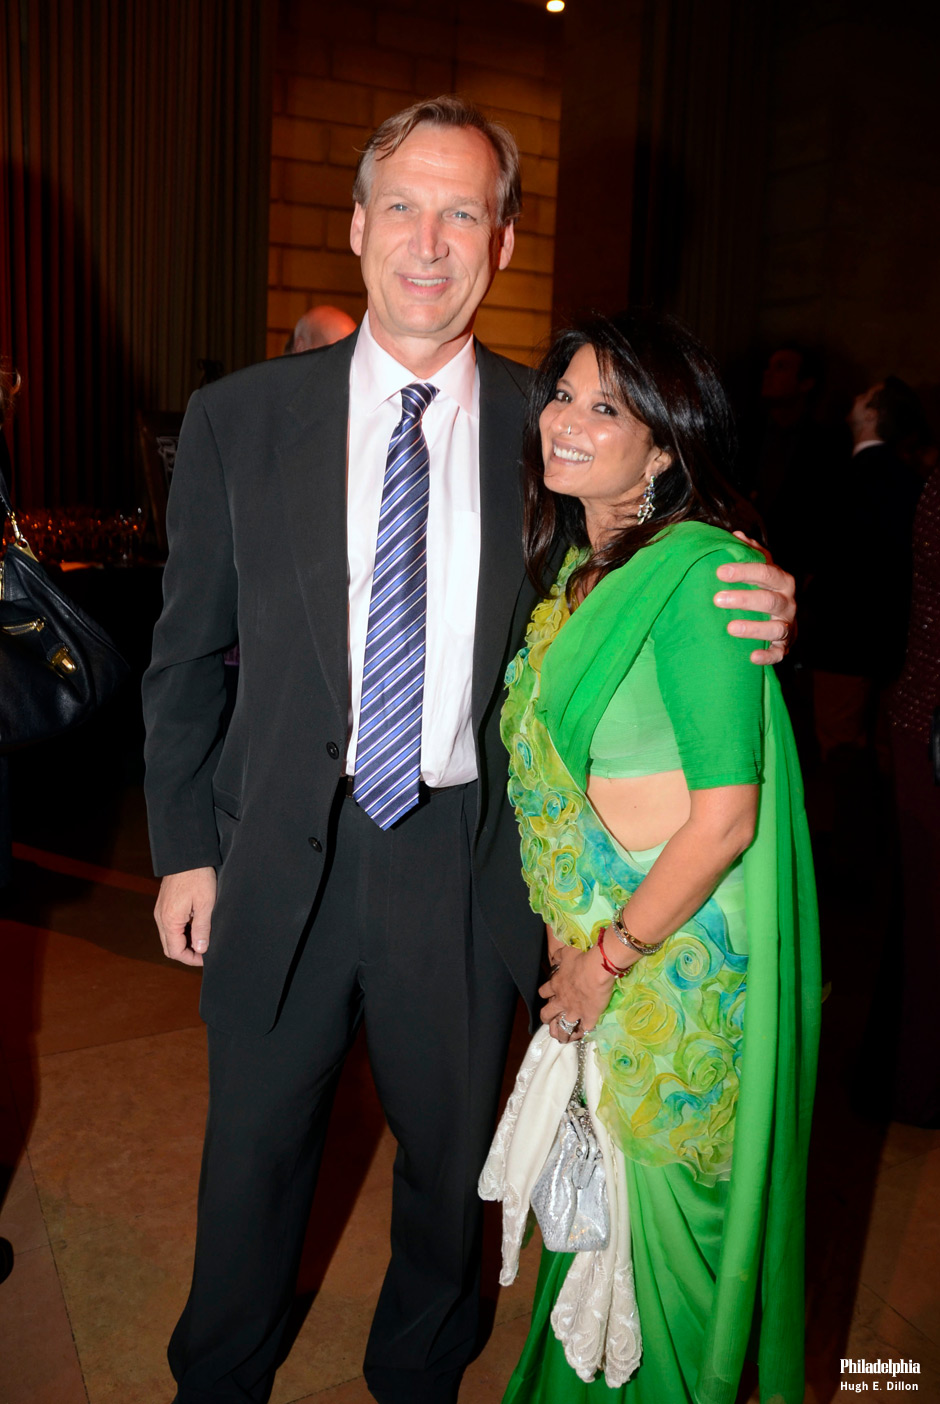 "On October 10, 2013, the Young Friends of the Philadelphia Museum of Art and Timothy Rub, Chief Executive Officer, (with guest Pia RoyChowdhury) hosted nearly 700 guests to celebrate the opening of Léger: Modern Art and the Metropolis, which runs through January 5, 2014. Guests enjoyed ""The City of Lights"" themed evening, with cabaret music, light fare from STARR catering, cocktails including the Raspberry Beret as the museum was stylishly transformed to evoike the streets of Paris and the Metro."